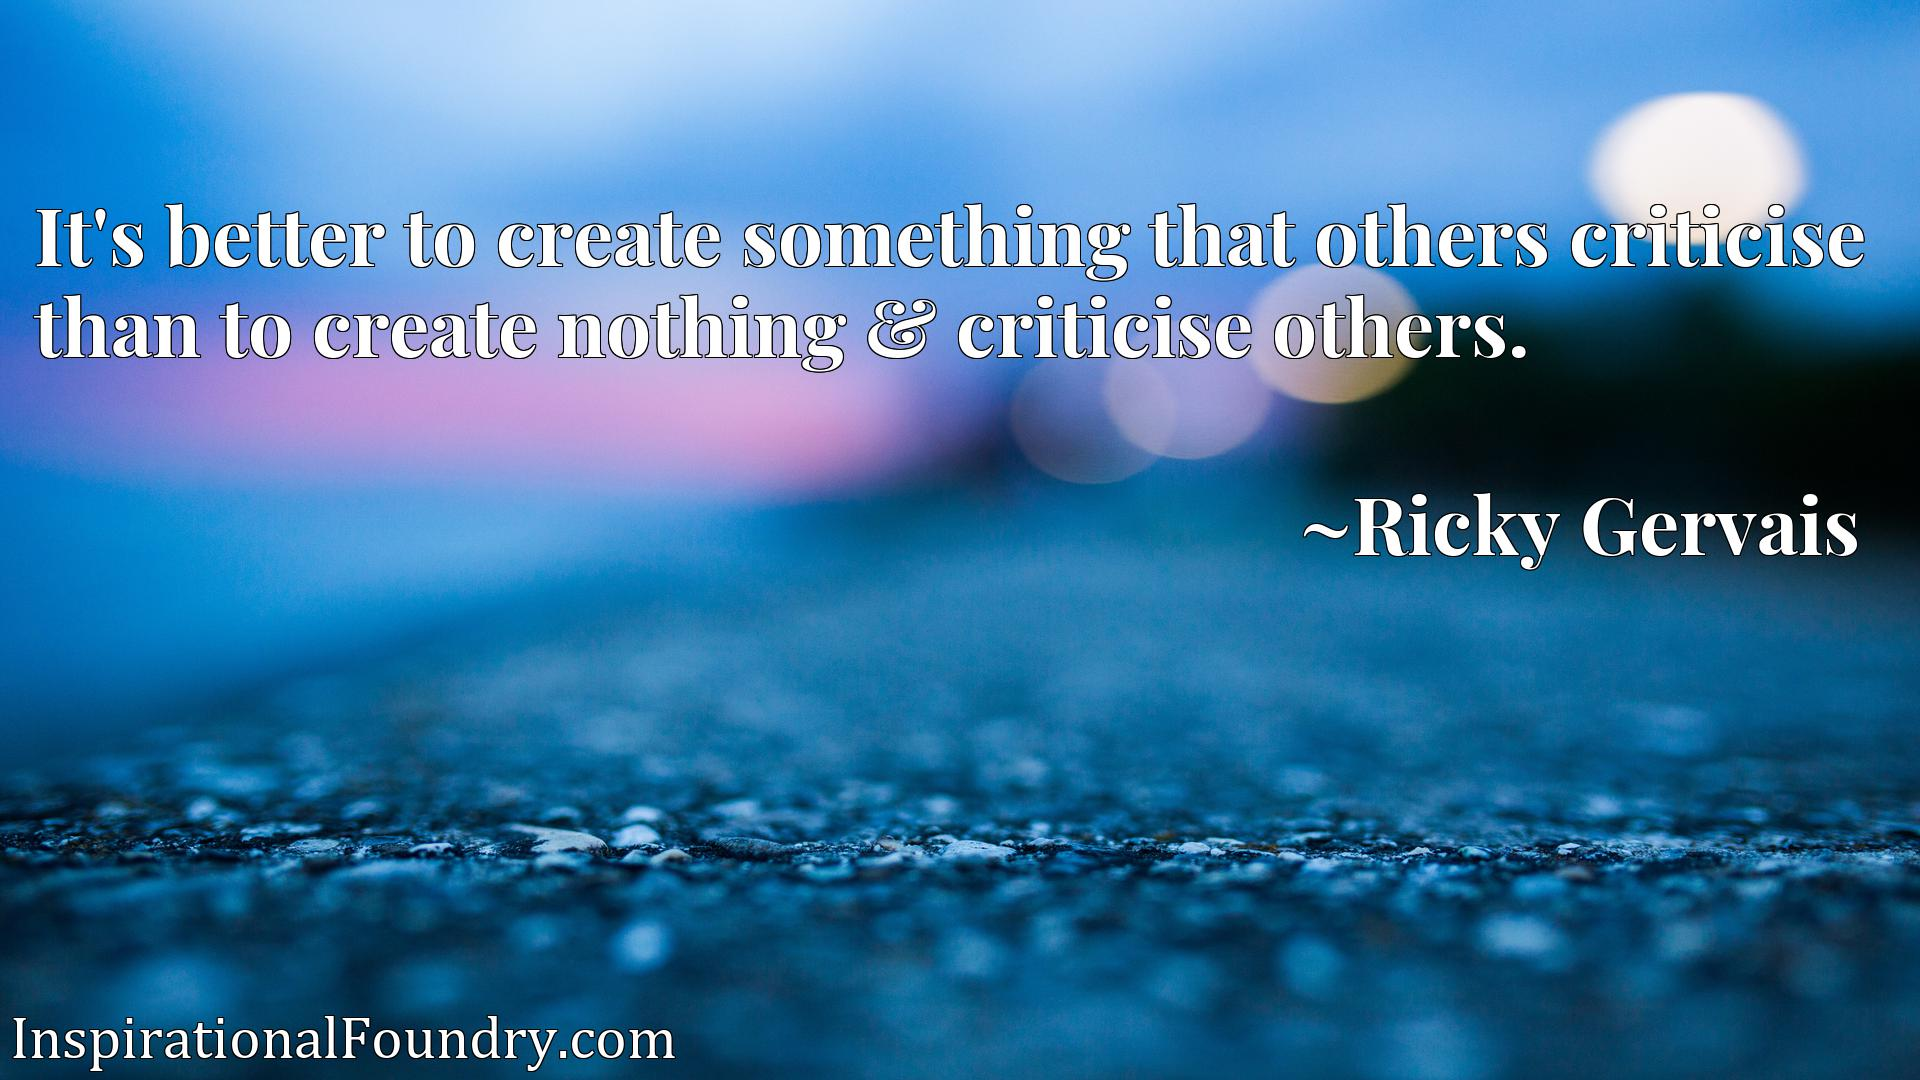 It's better to create something that others criticise than to create nothing & criticise others.